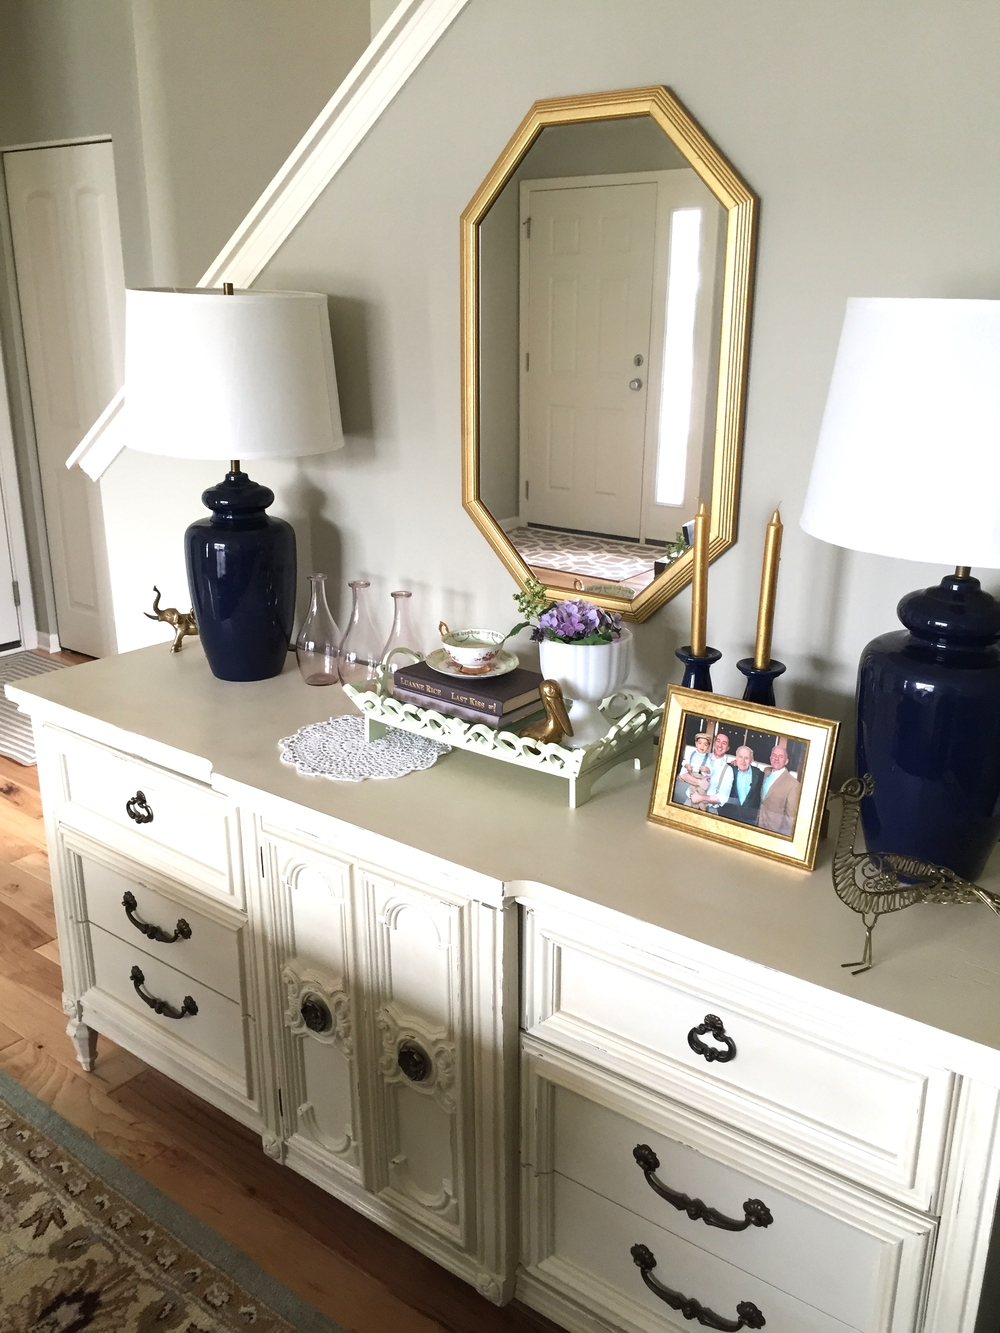 This is a more recent photo of the buffet. I picked up that mirror from a garage sale earlier this summer. The shape kind of mimics the shape of the chandelier in the room. I like to change up the styling with the seasons. [can you believe that everything you see in this photo was thrifted?]